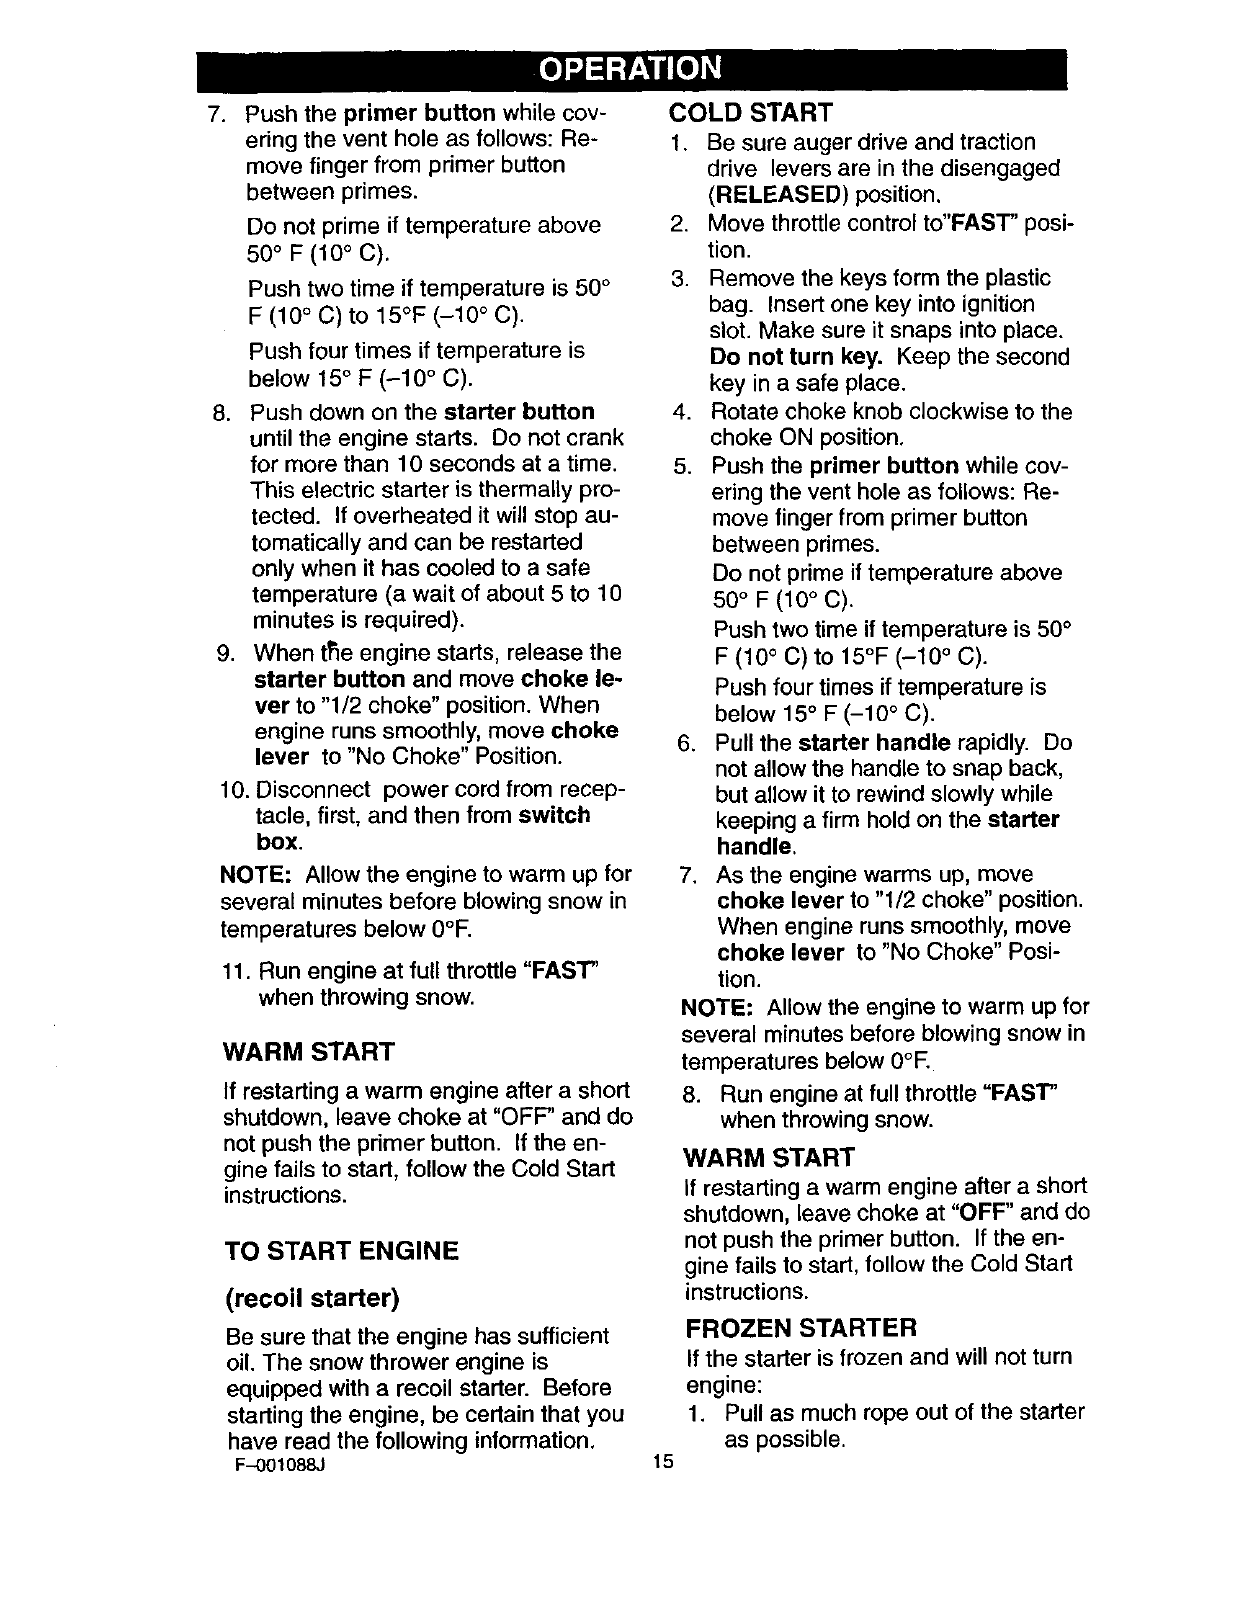 Page 15 of Craftsman Snow Blower 536.88626 User Guide